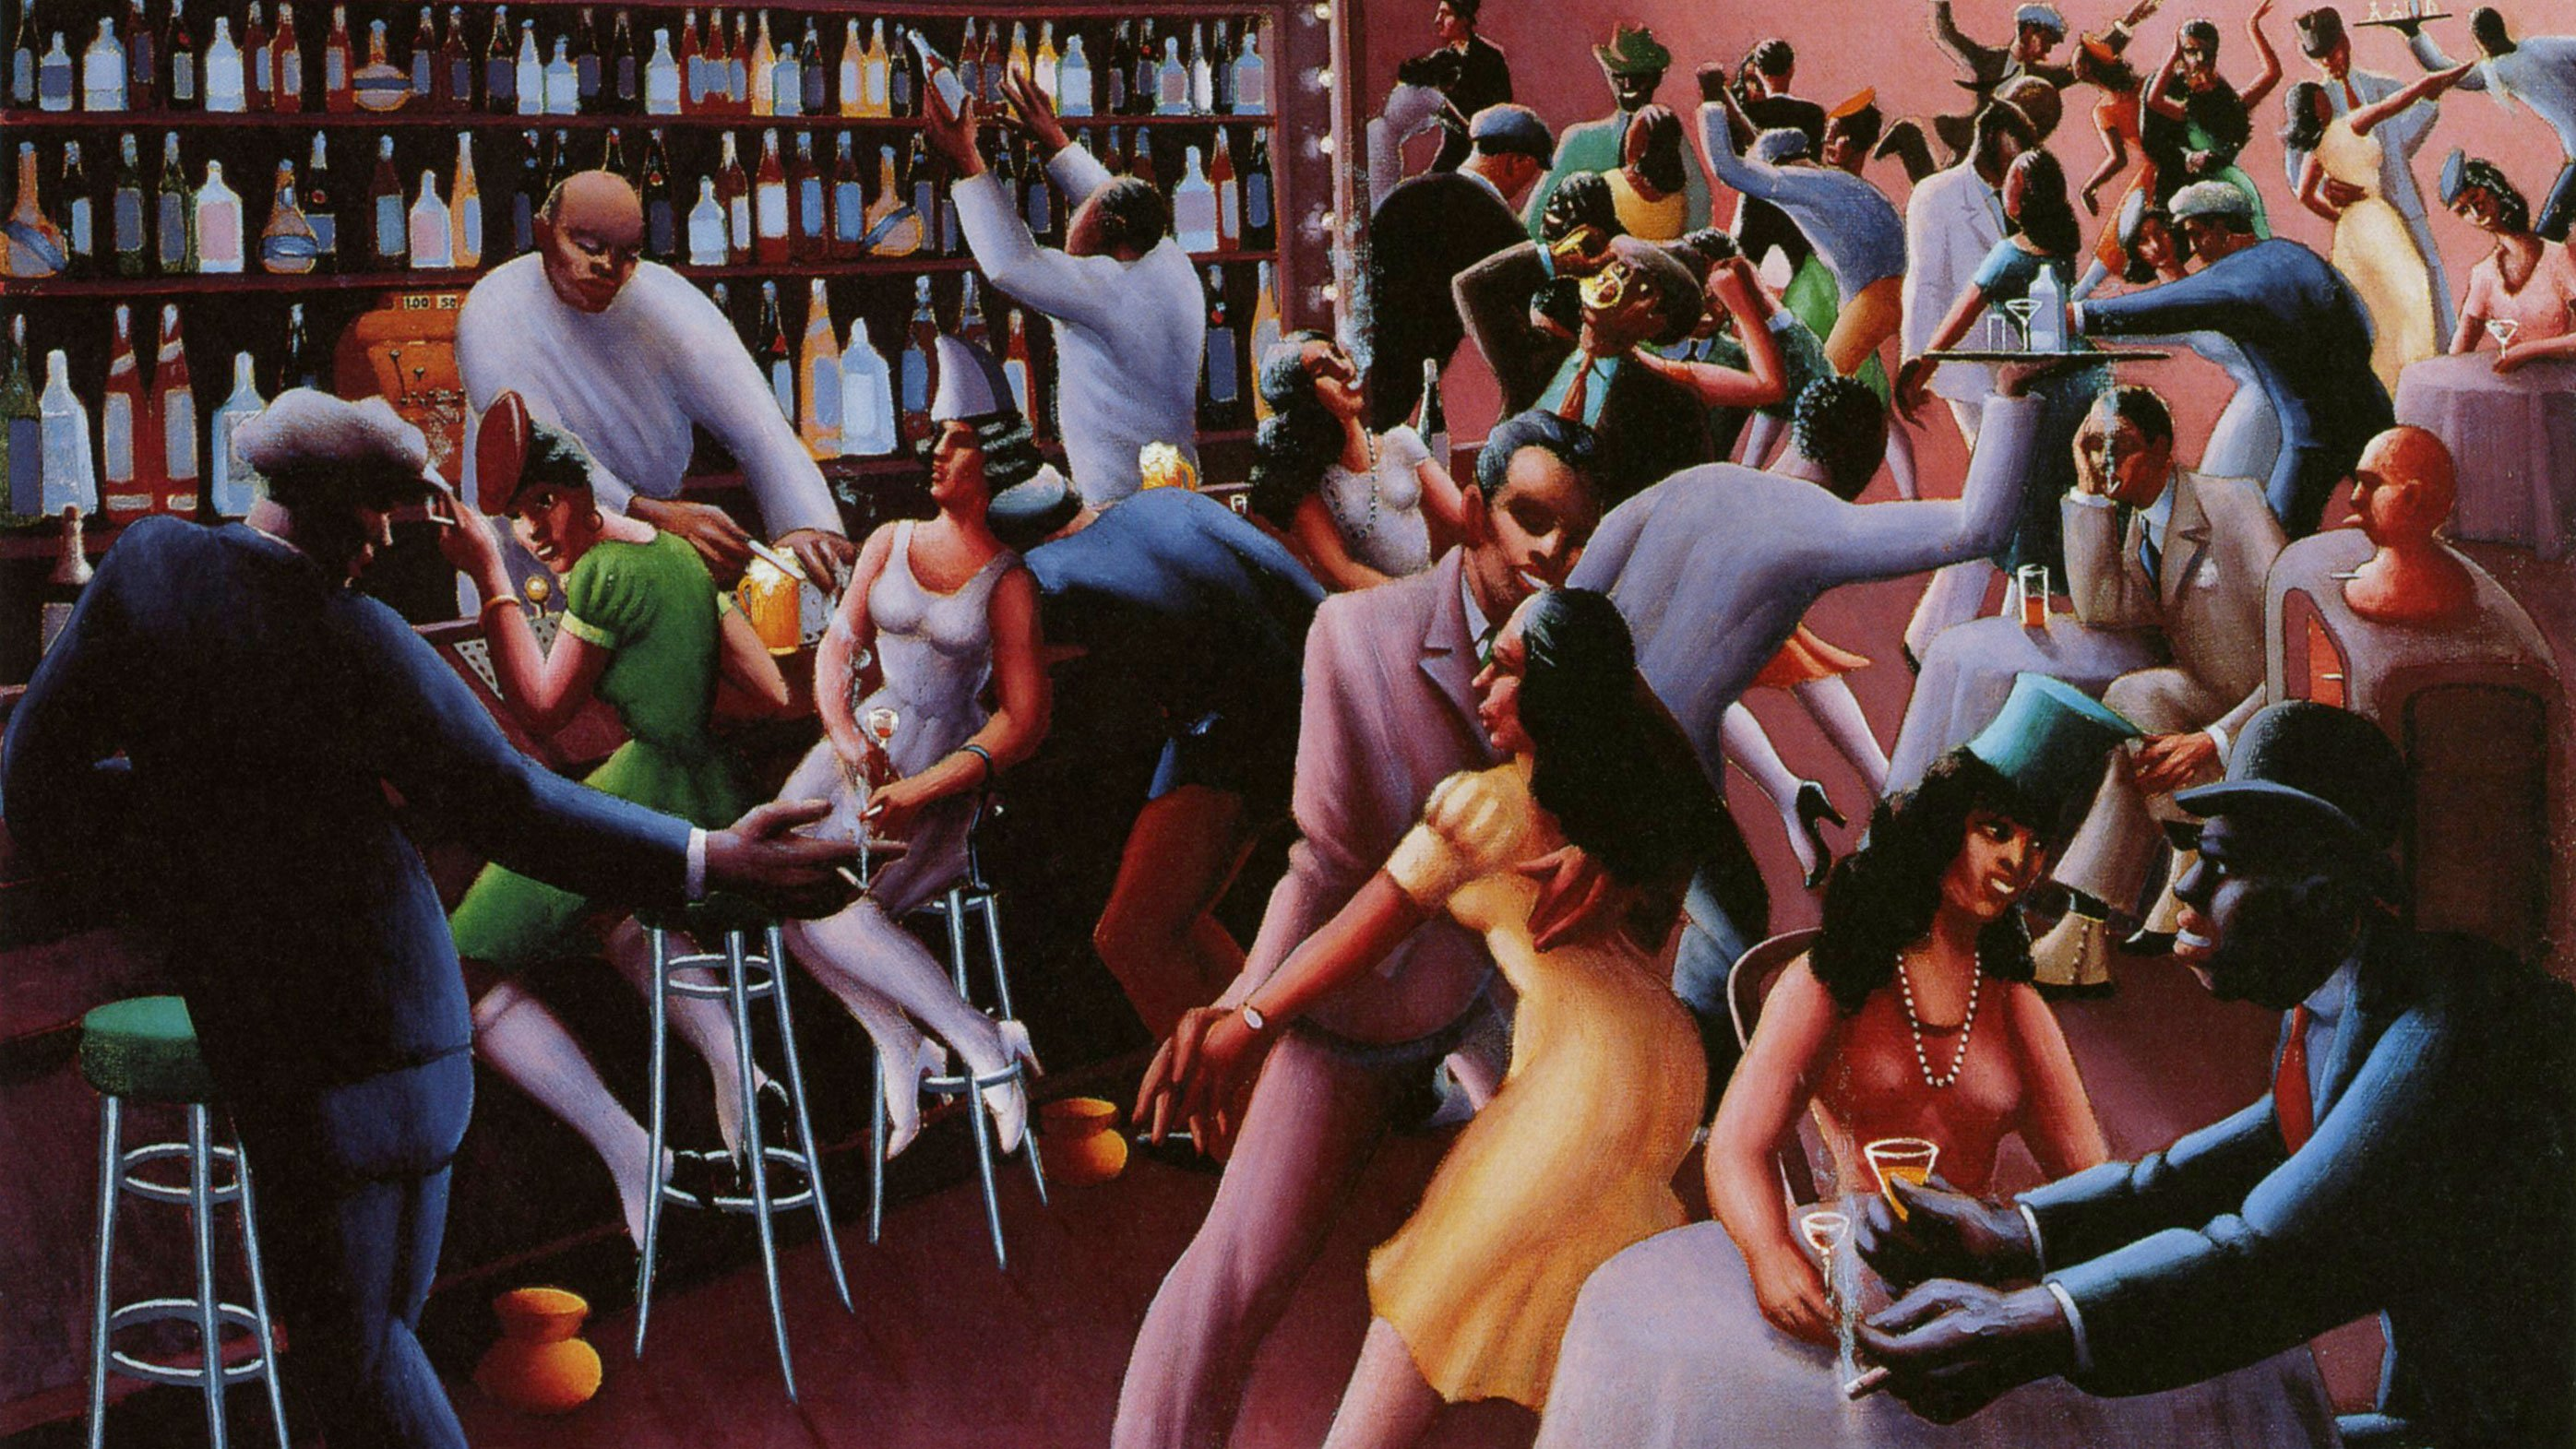 'Nightlife' painting by Archibald Motley, Jr.